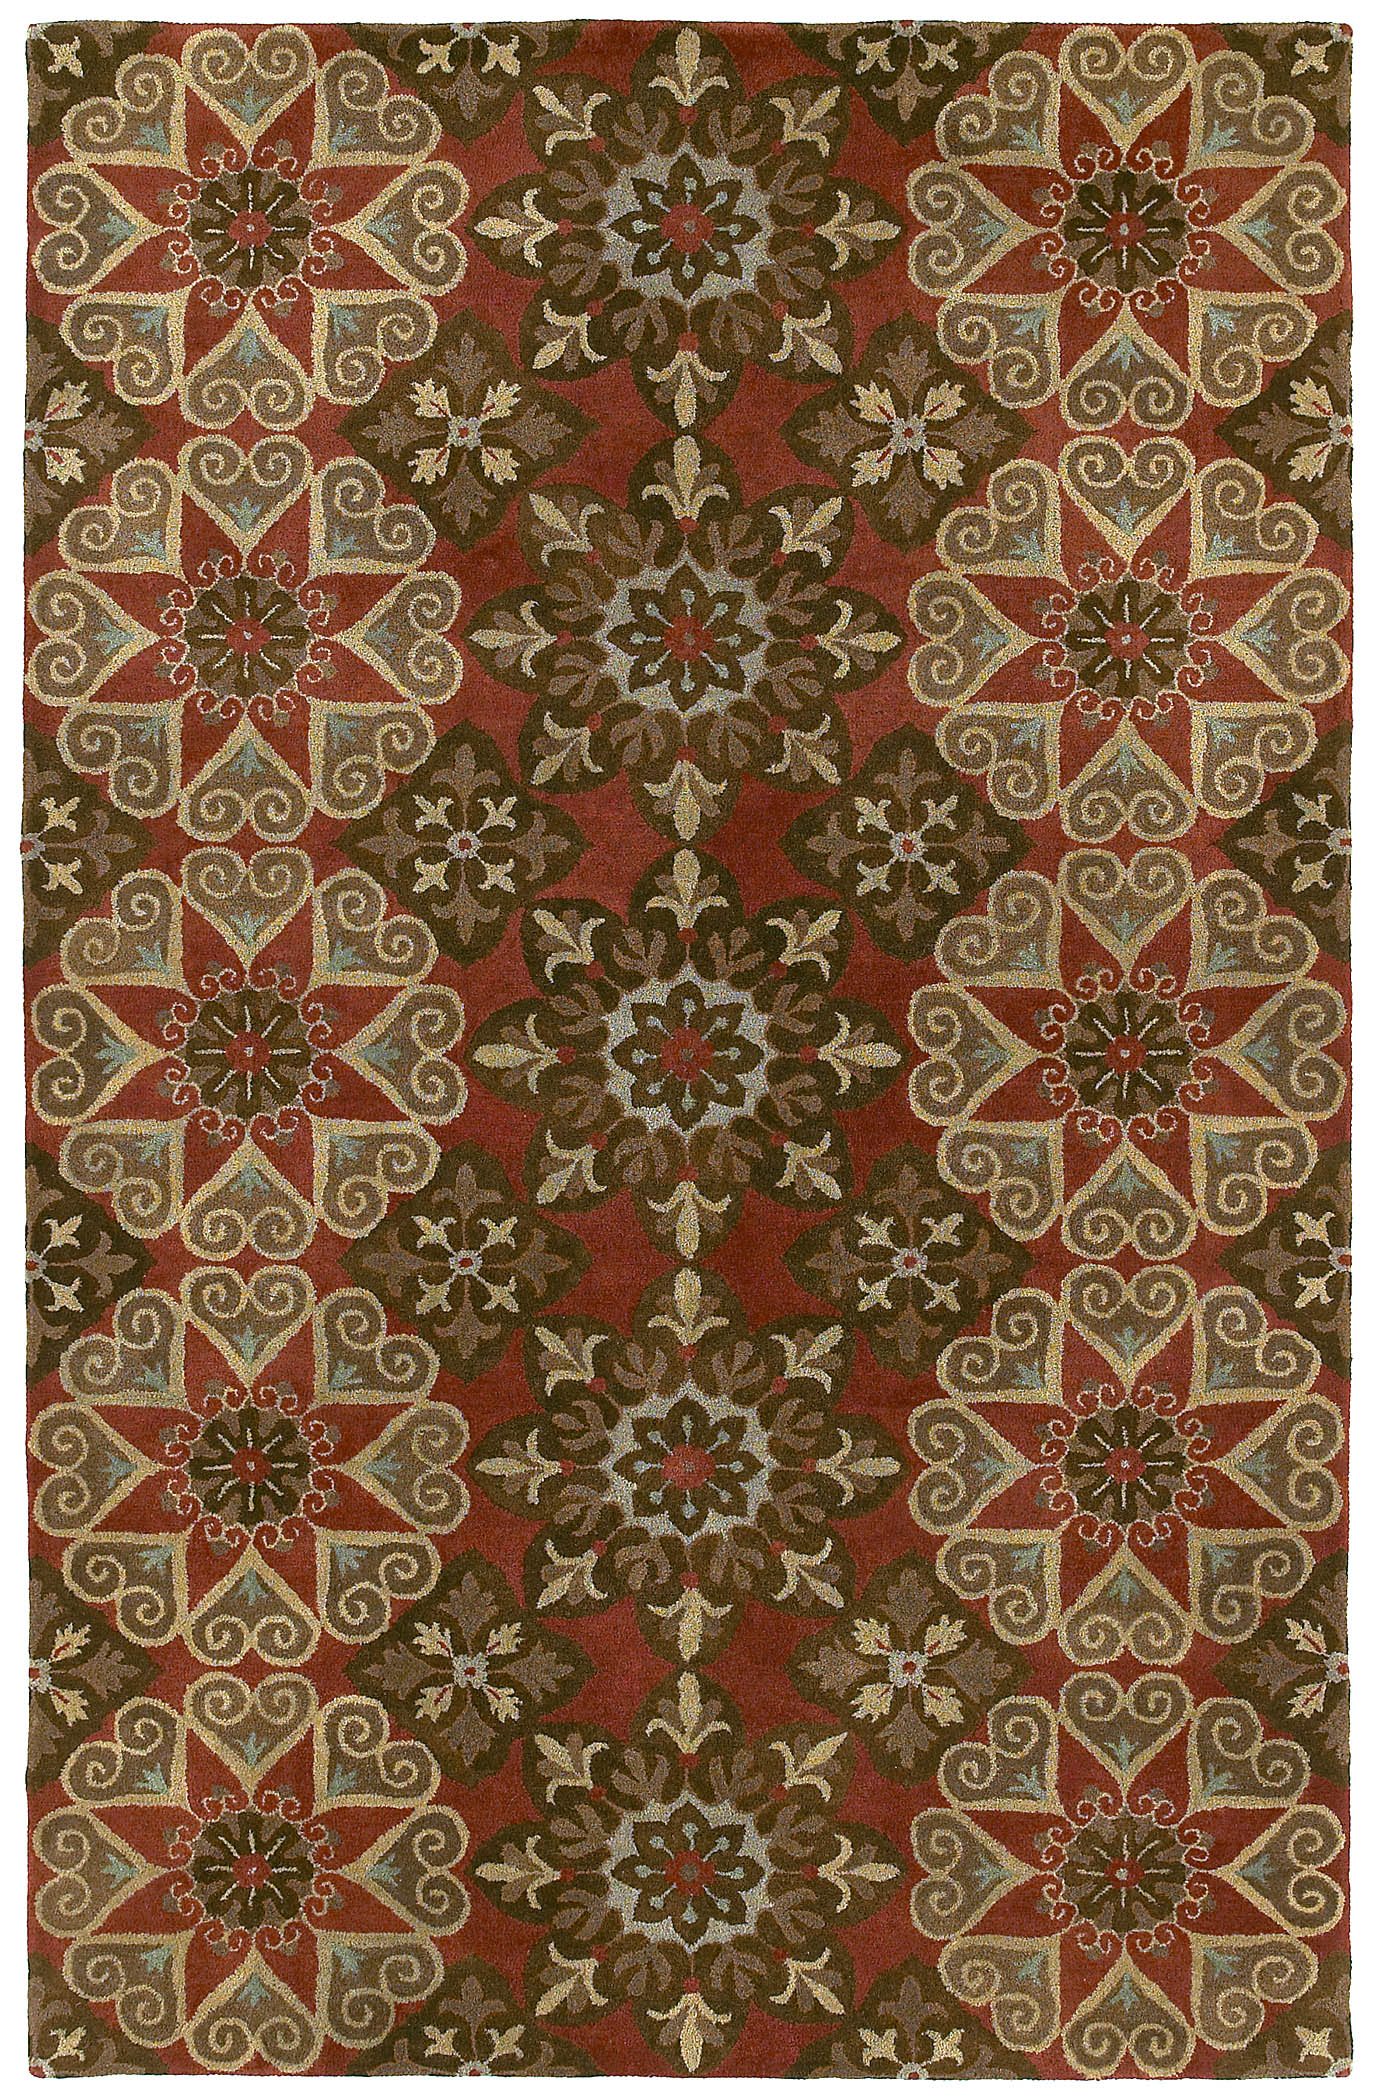 Papal Salsa 6049-57 Mystic Rug by Kaleen